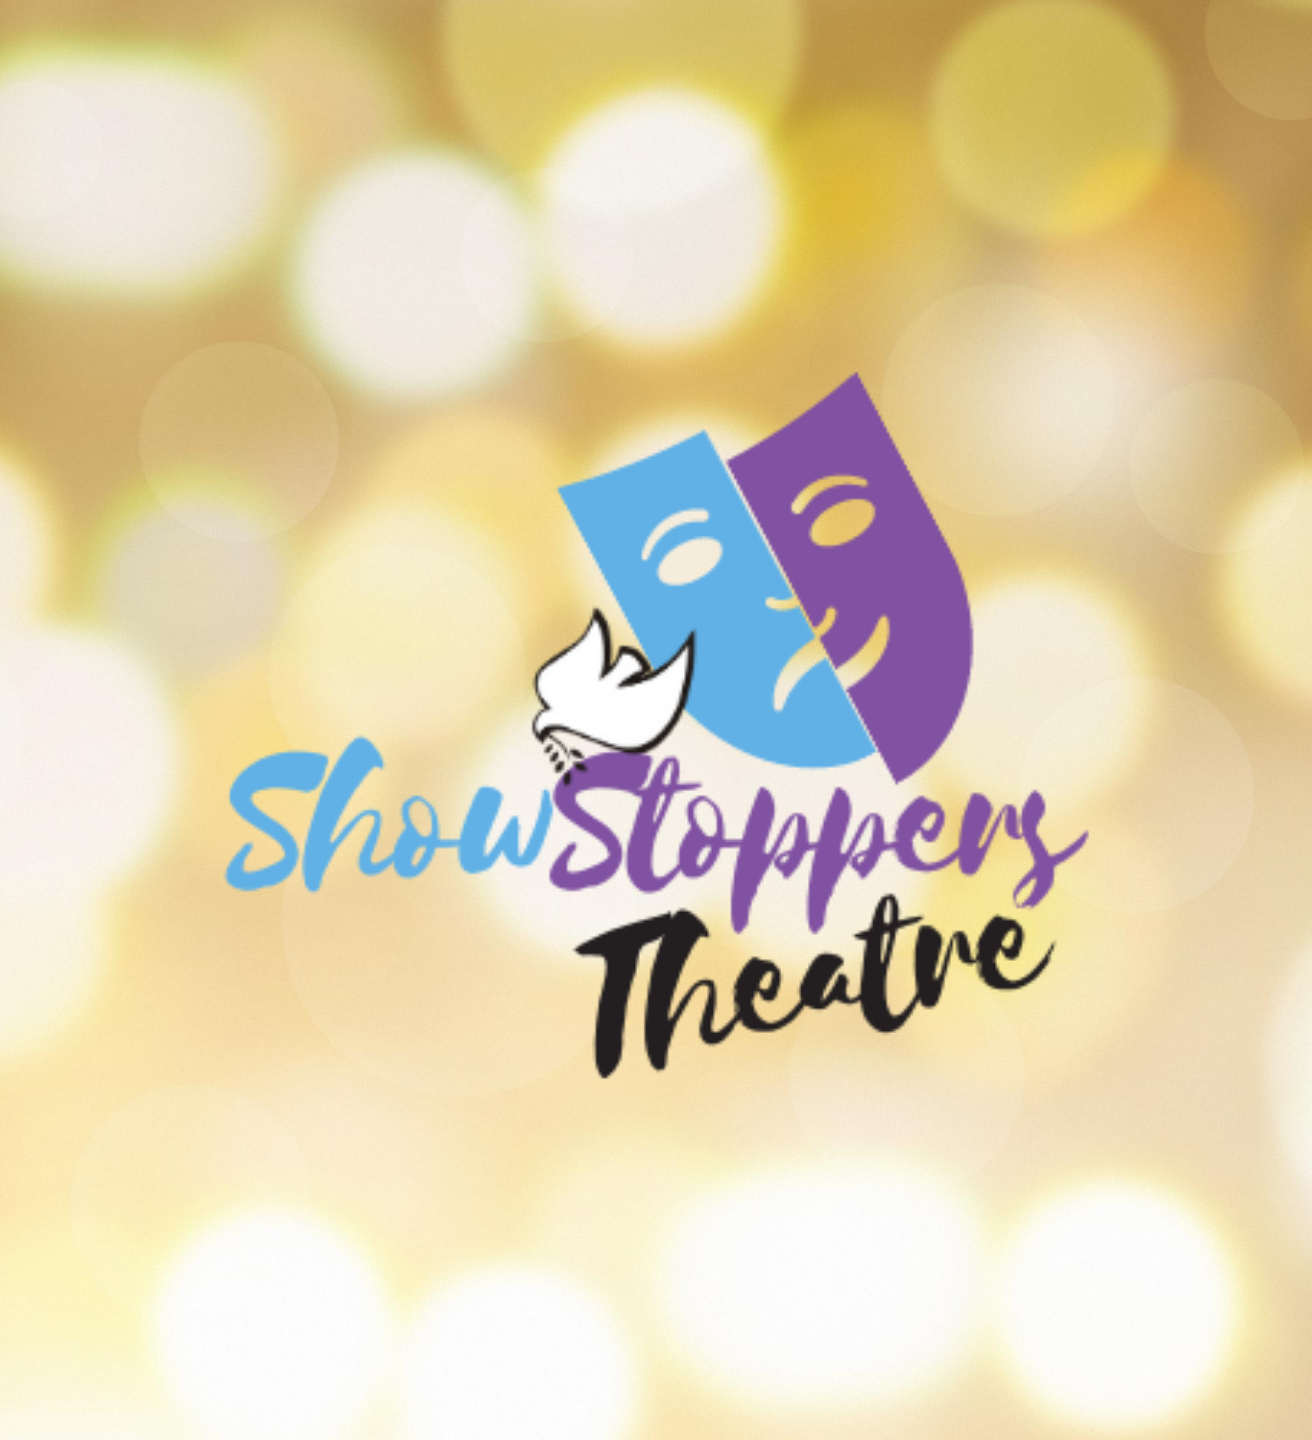 Show Stoppers Theatre - Theatre Program - Arts in Action